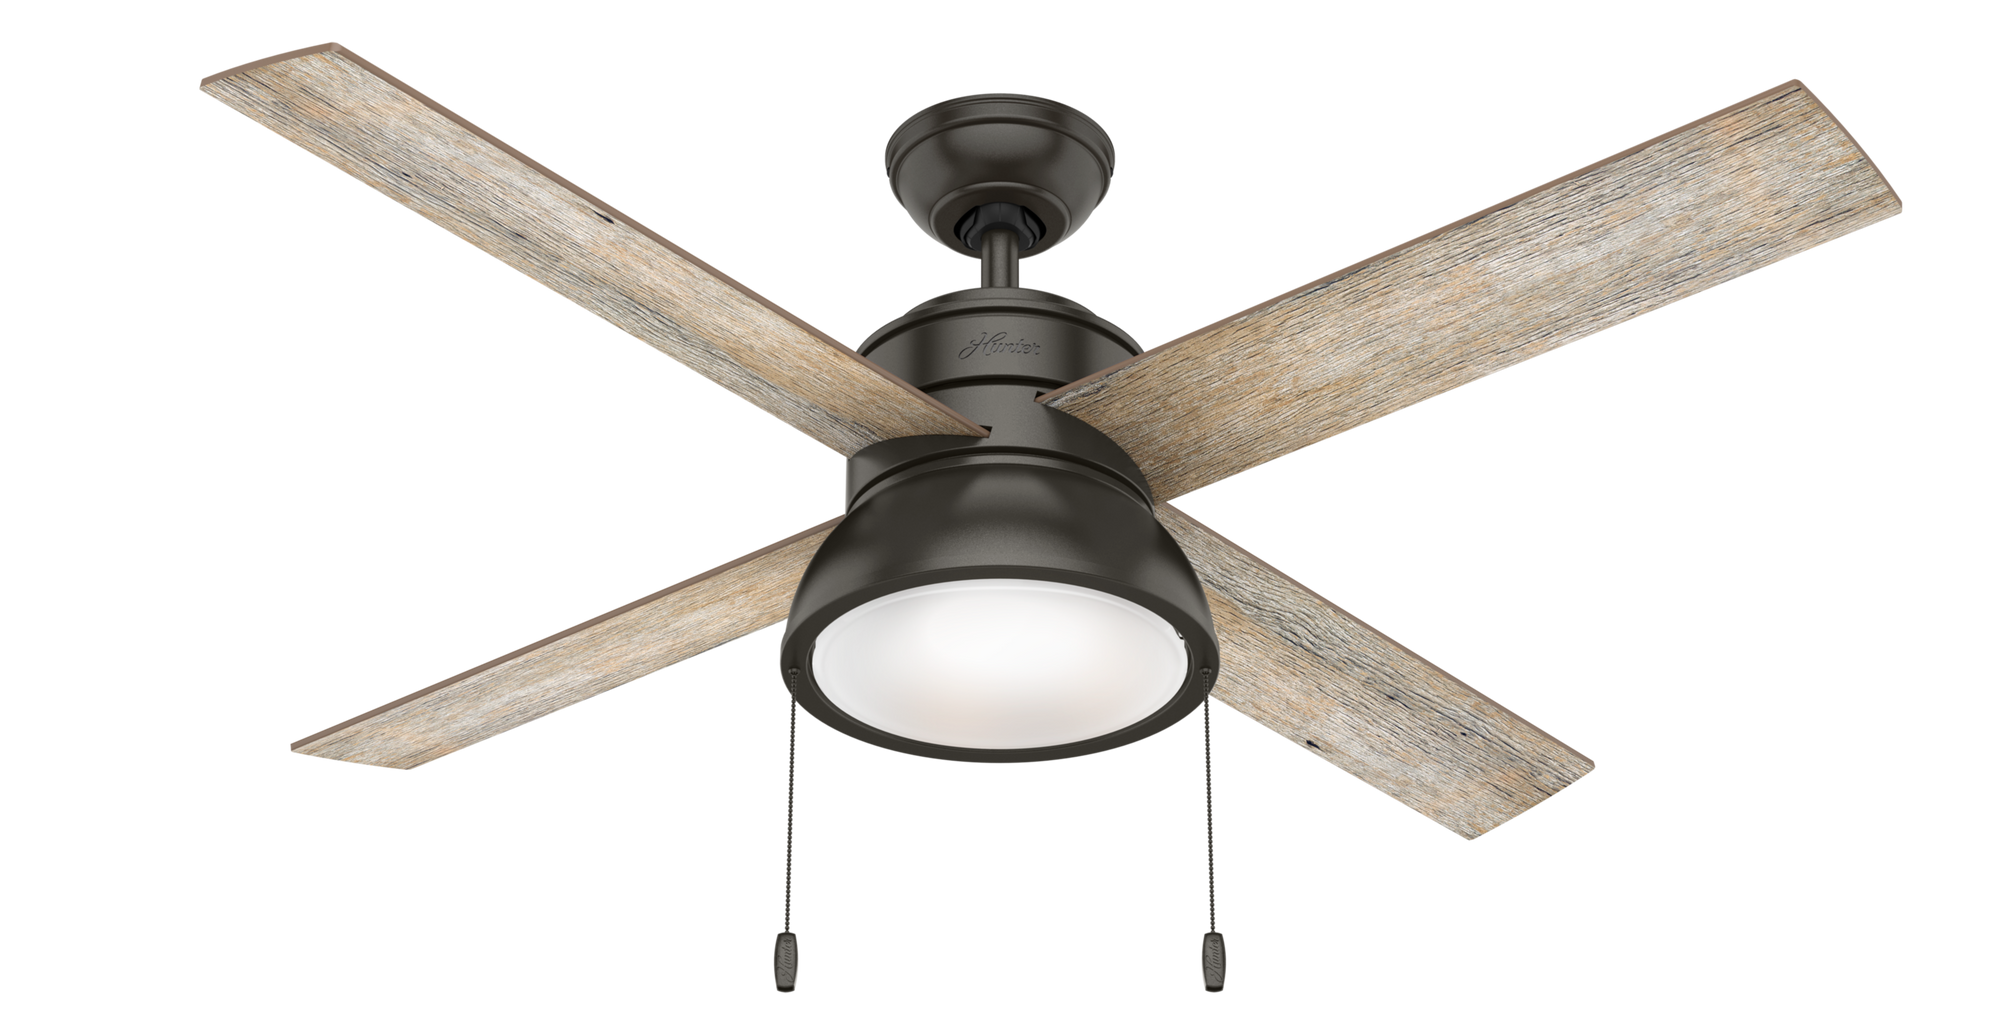 Hunter Indoor Loki Ceiling Fan with LED LightJD inch, Bronze/Brown, 54152